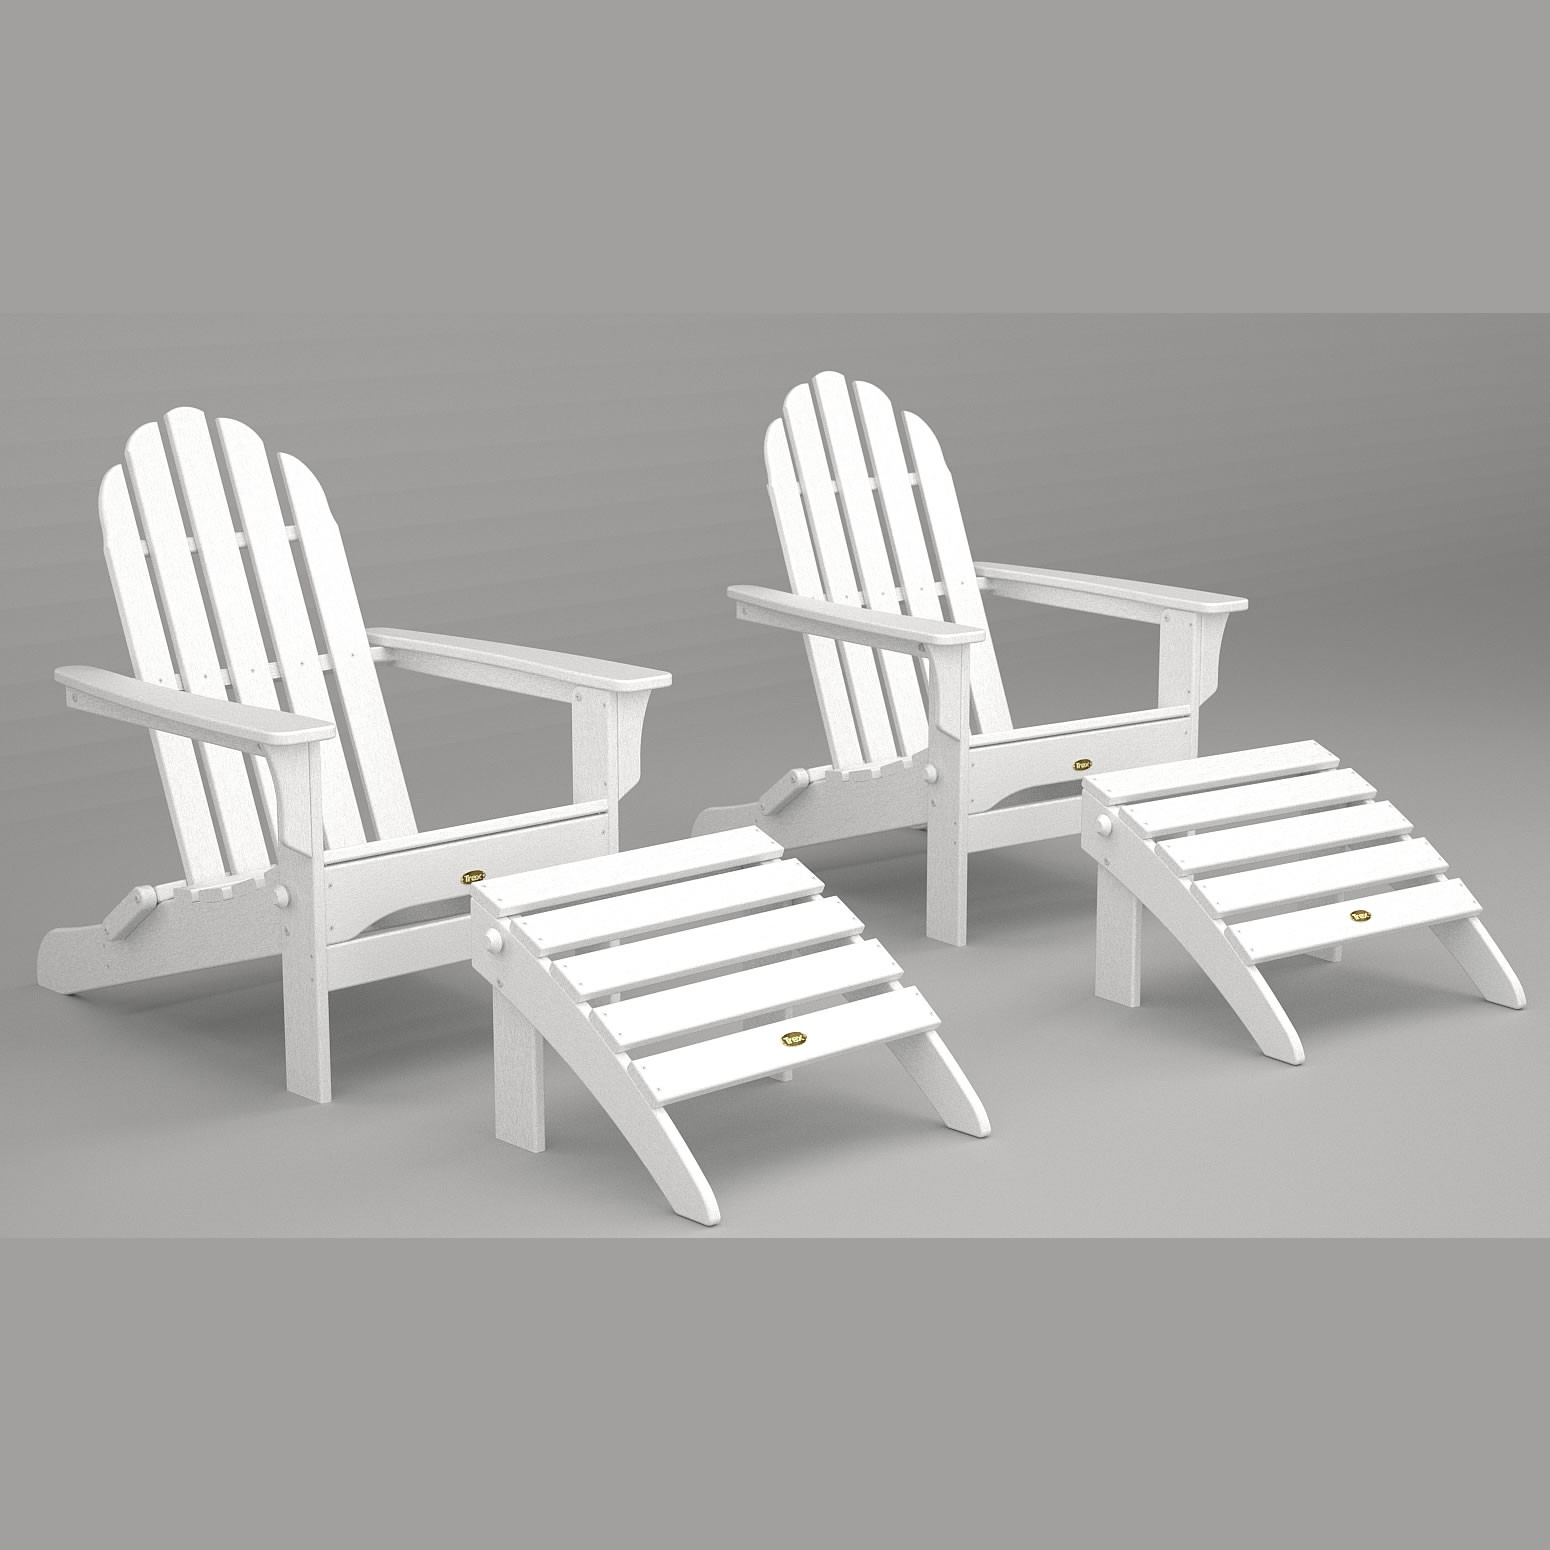 Trex® Outdoor Furniture Cape Cod Folding Adirondack Chair And Ottoman  Seating Set   Trex® Outdoor Furniture Adirondack Chairs   Trex® Outdoor  Furniture   ...